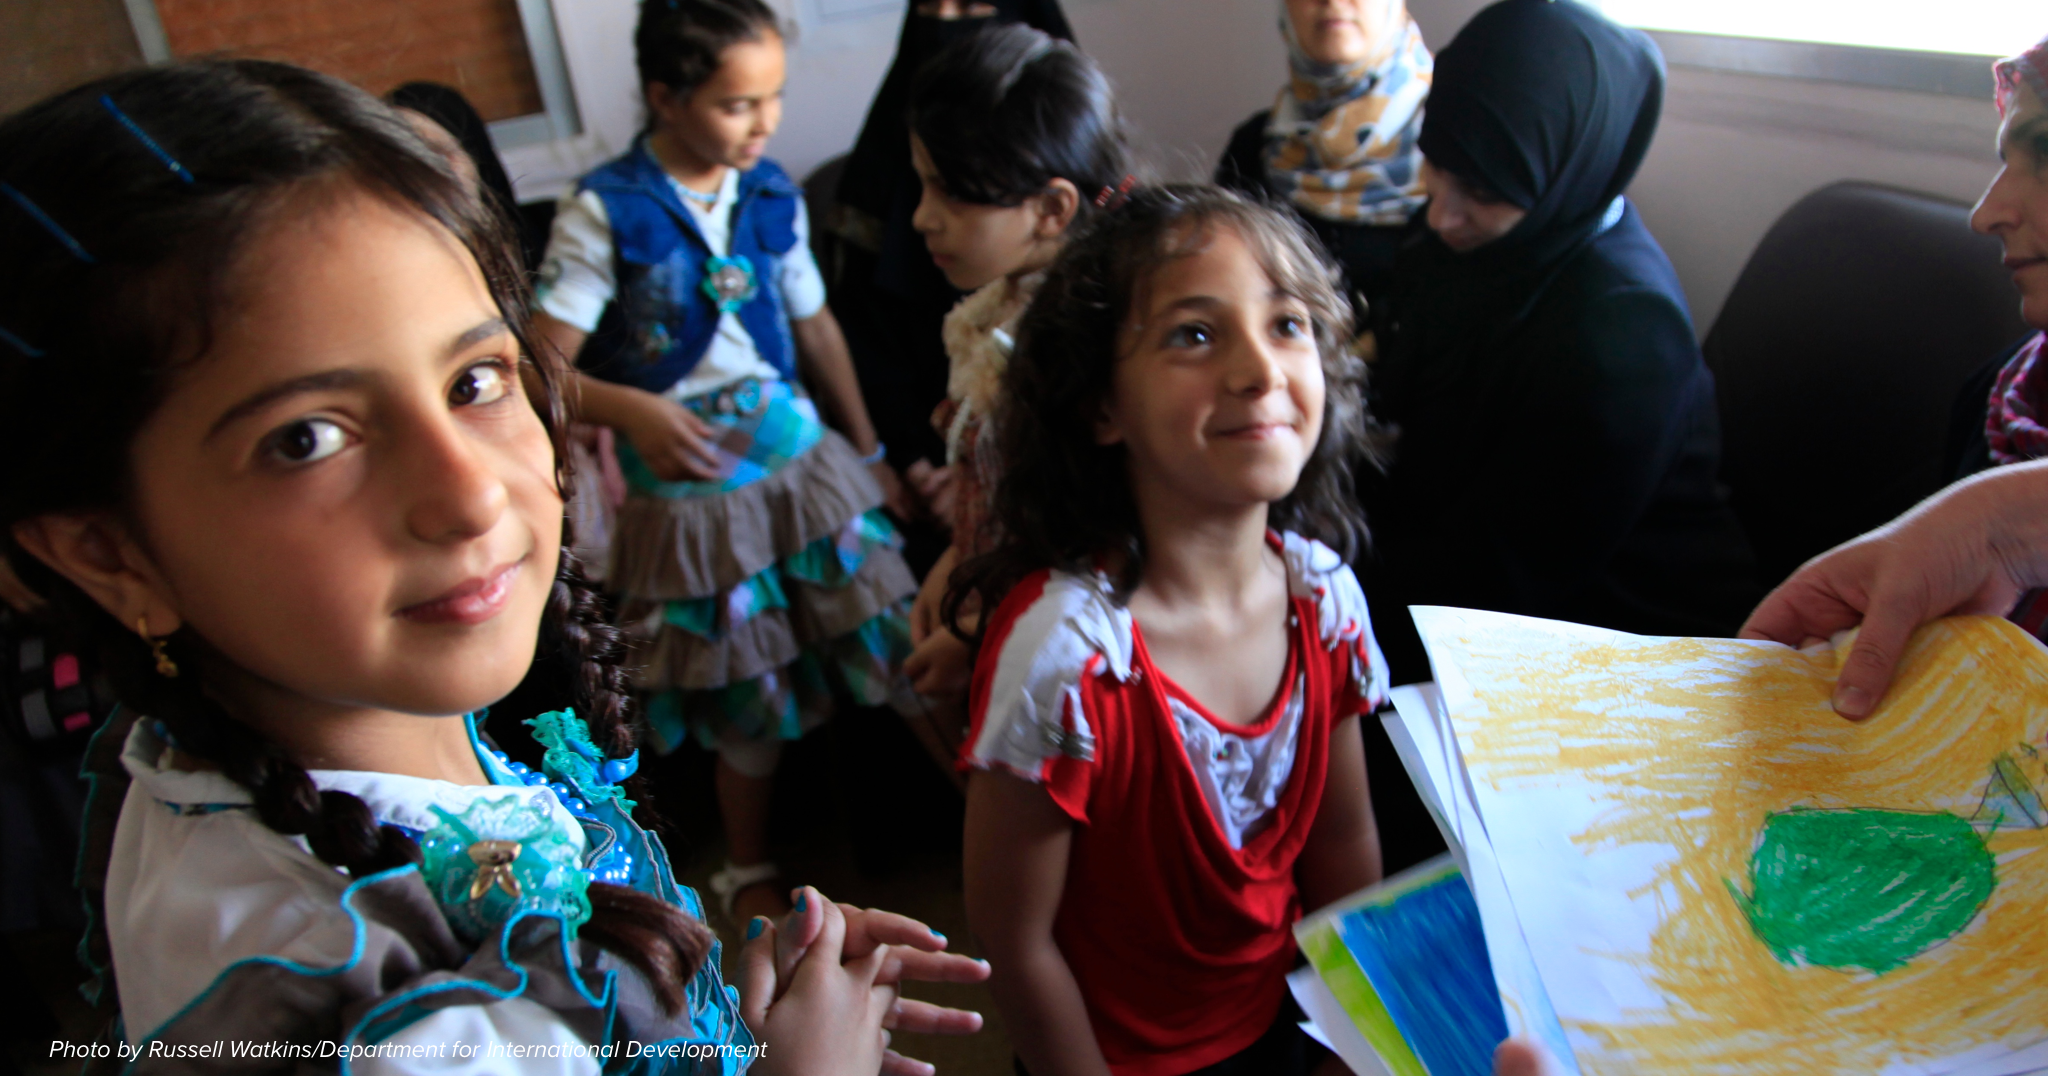 Cerego supports learning - and hope for the future - for refugee children